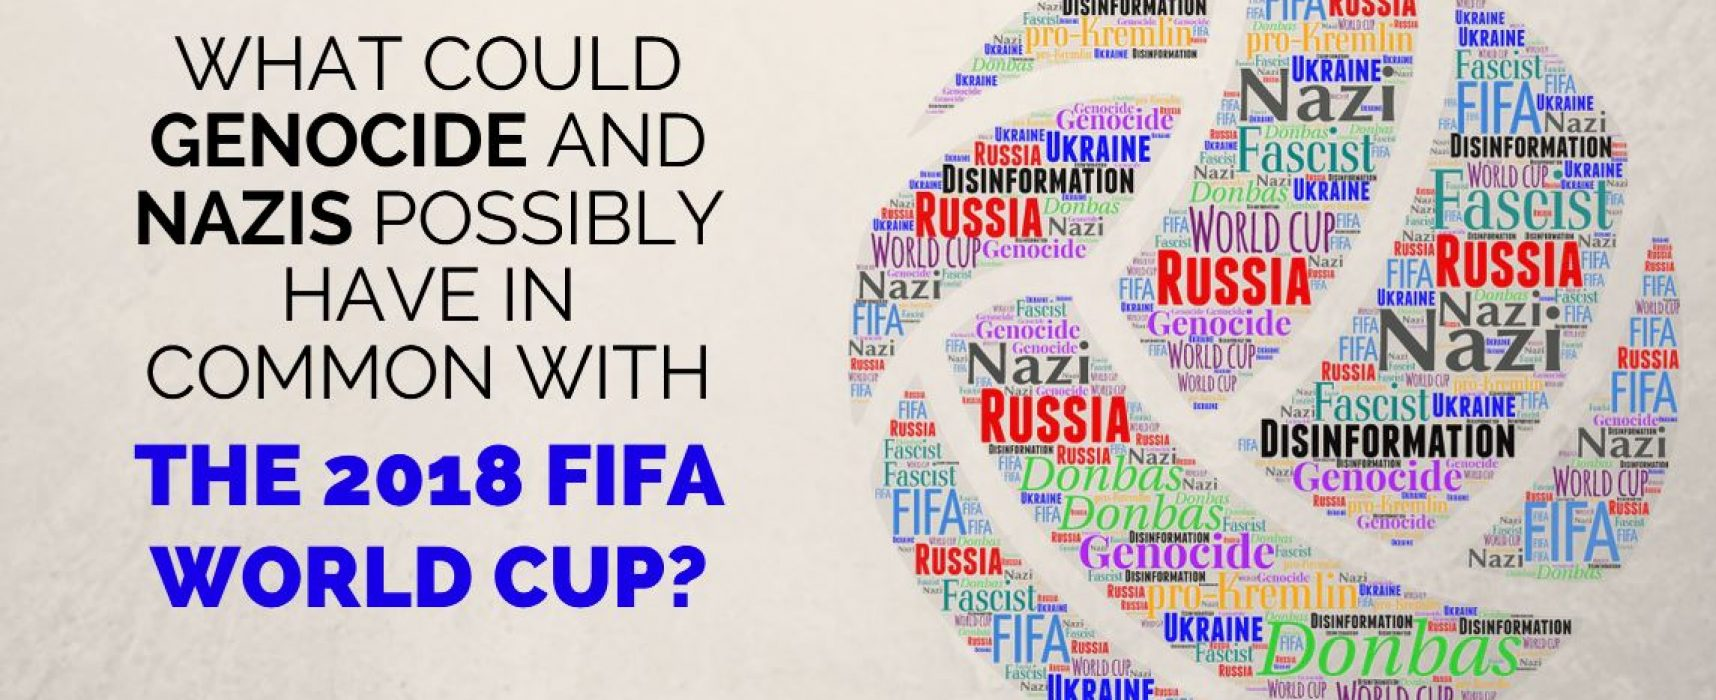 Keywords of Disinformation: Genocide, Nazi – and the World Cup